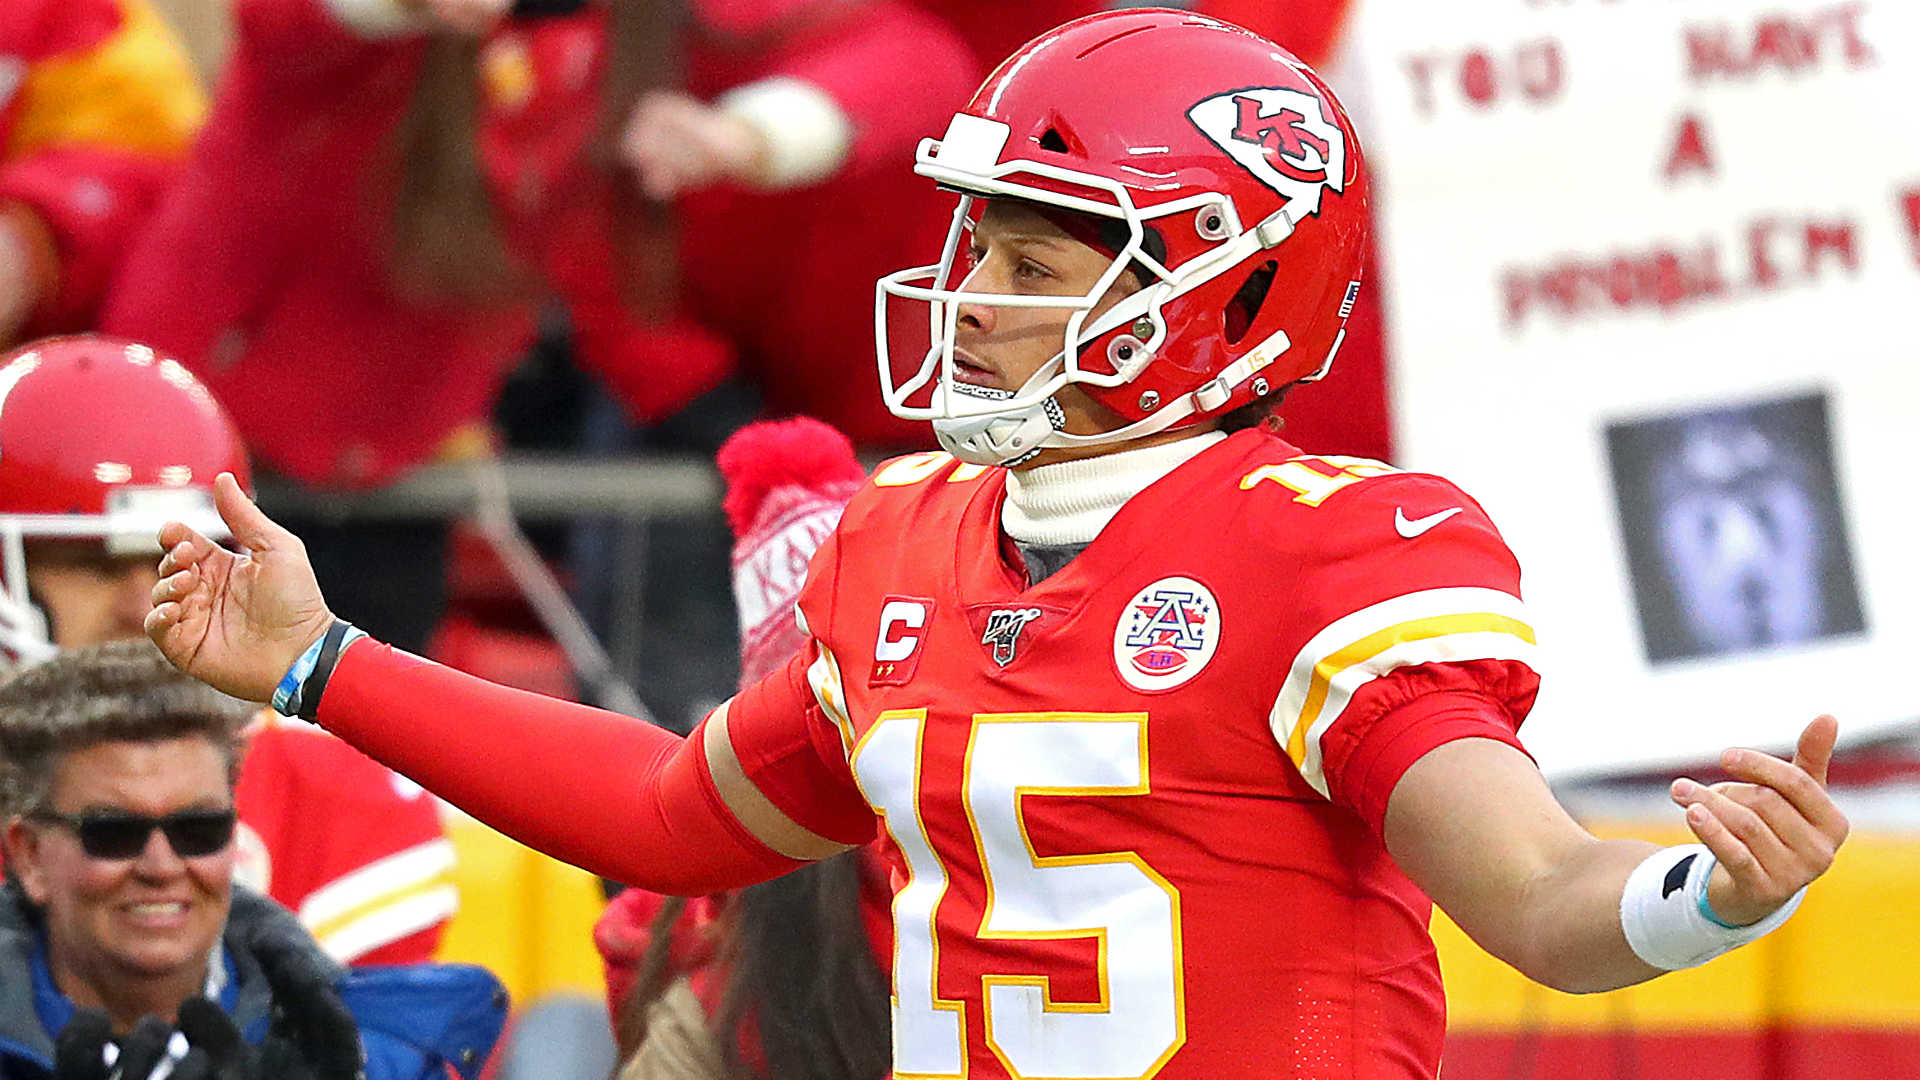 Super Bowl odds, spread, line: Chiefs open as favorite to win Super Bowl 54 over 49ers